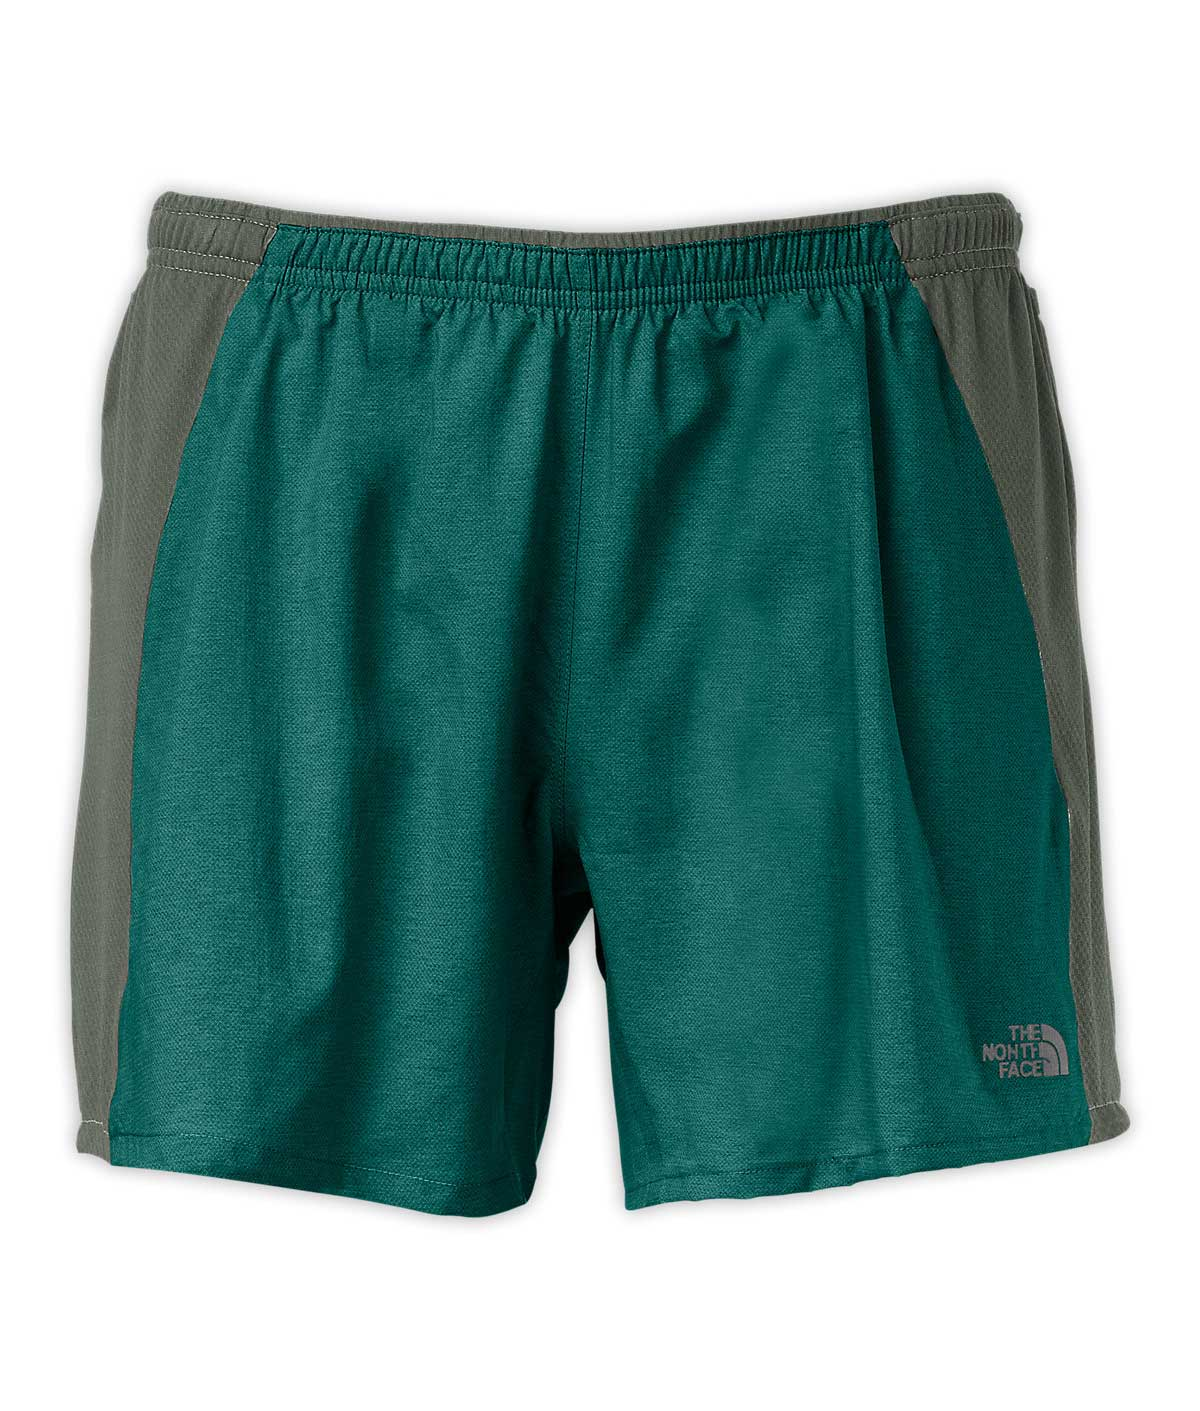 TNF M Better Than Naked™ Shorts deep teal